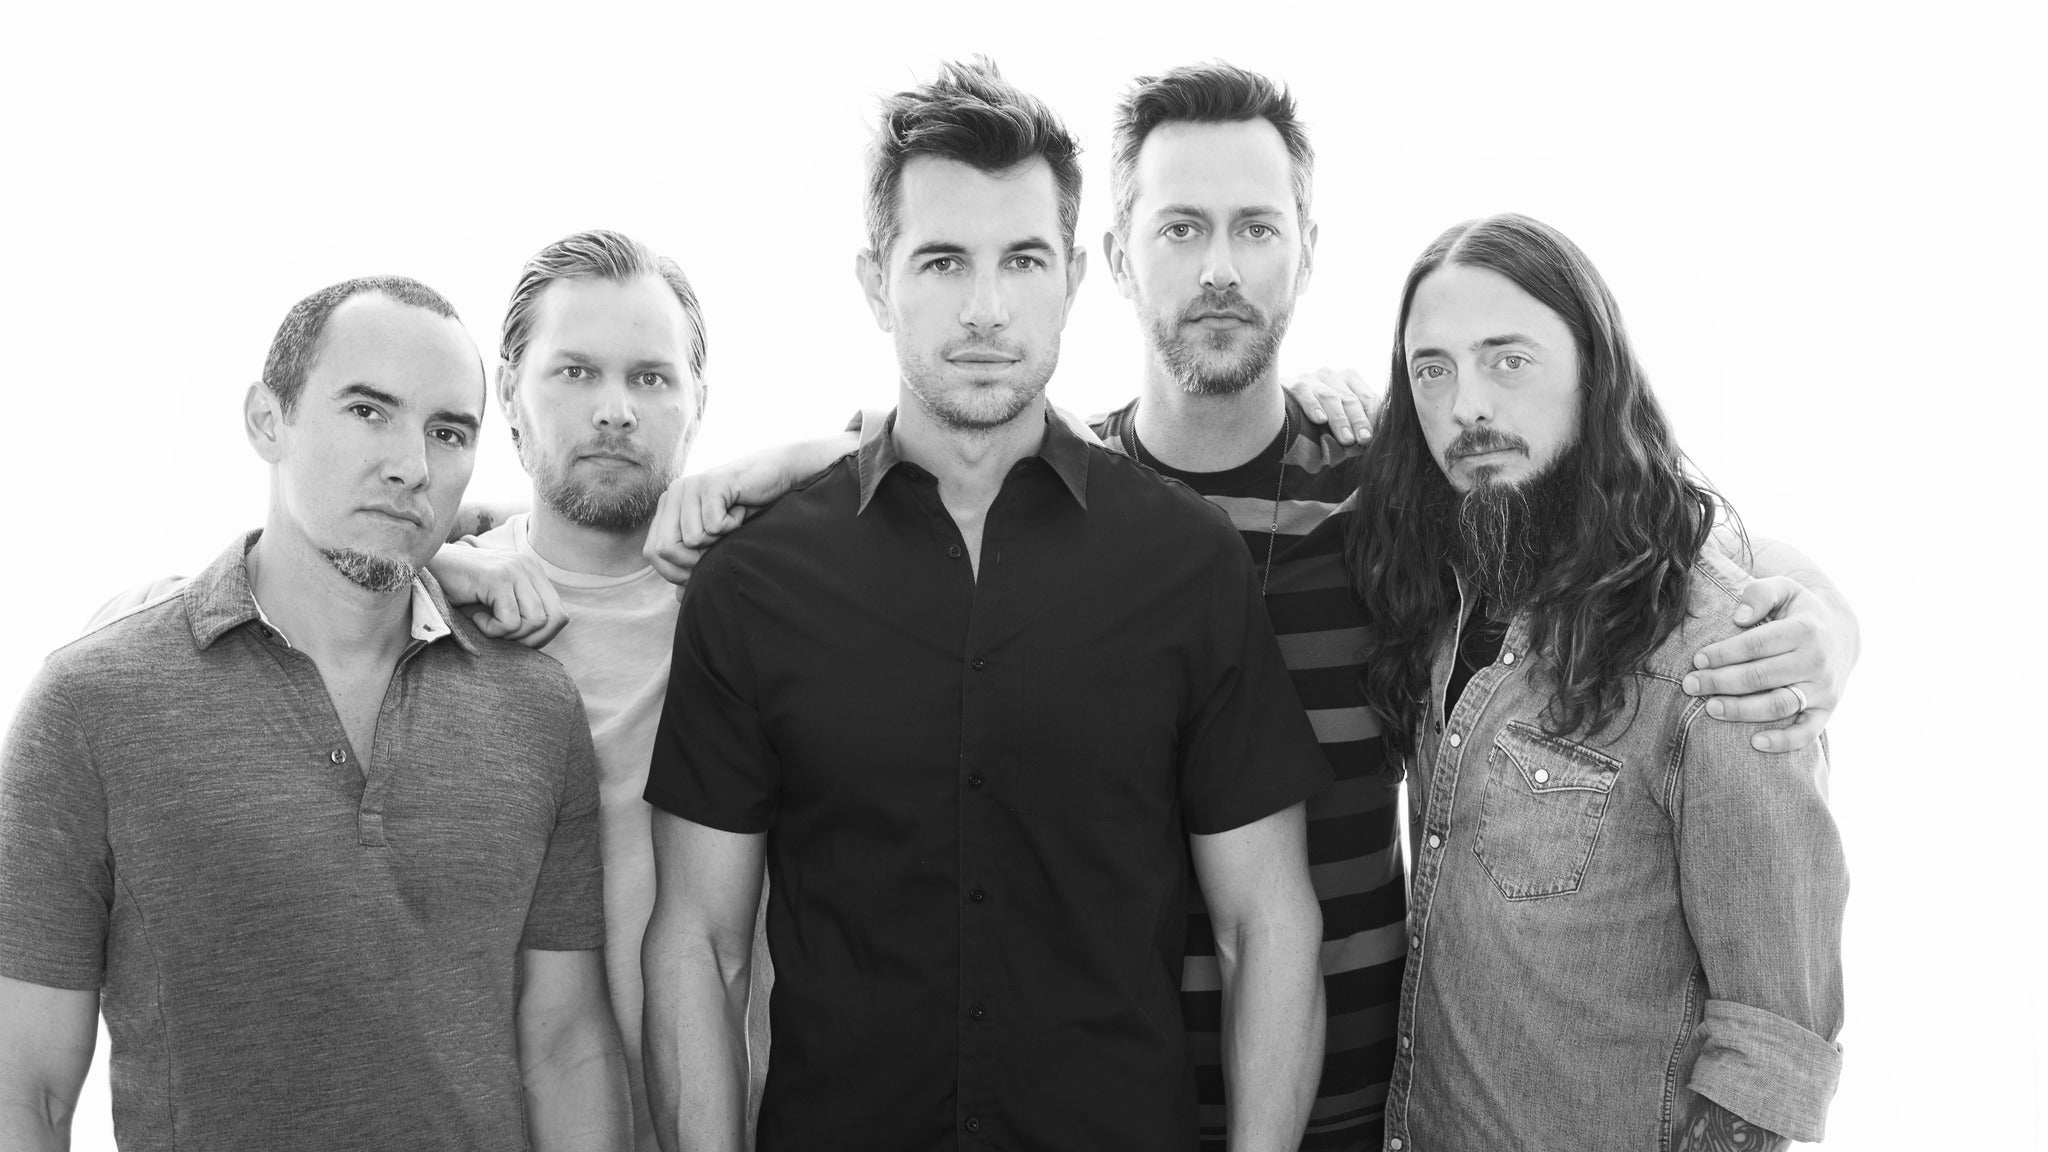 311 & Dirty Heads at PNC Bank Arts Center